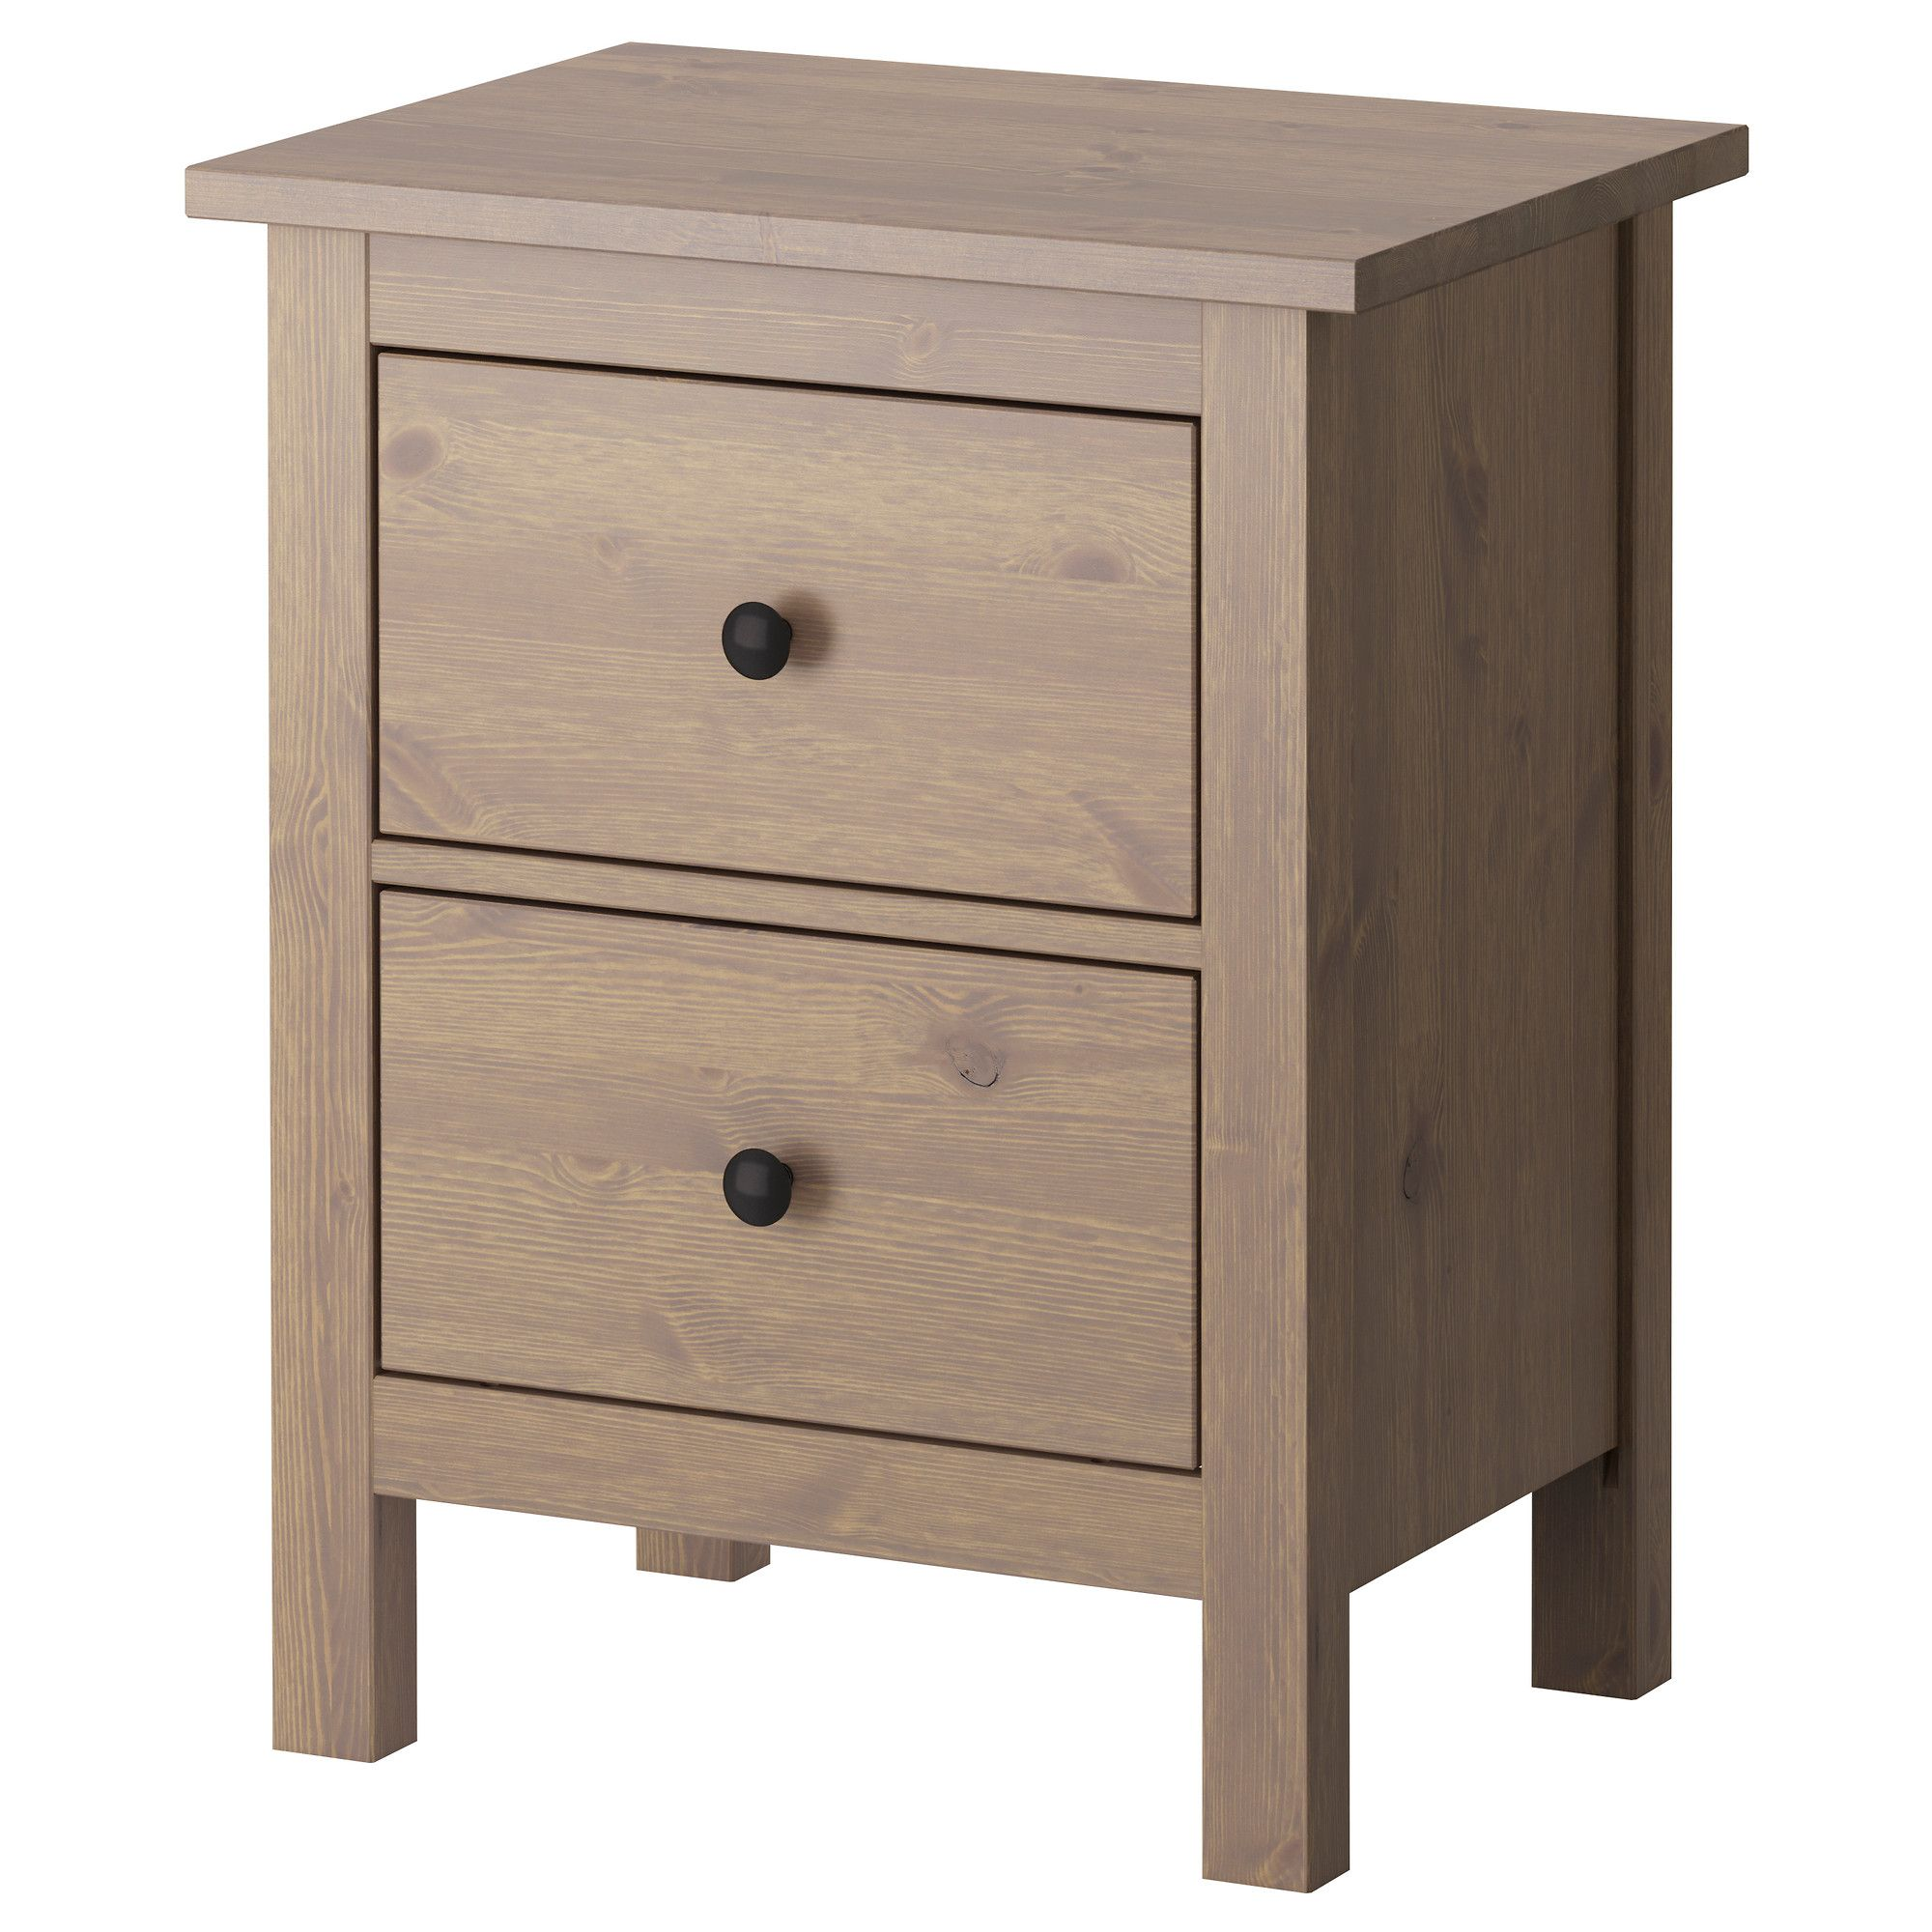 HEMNES 2-drawer chest, white stain | HEMNES, Drawers and ...